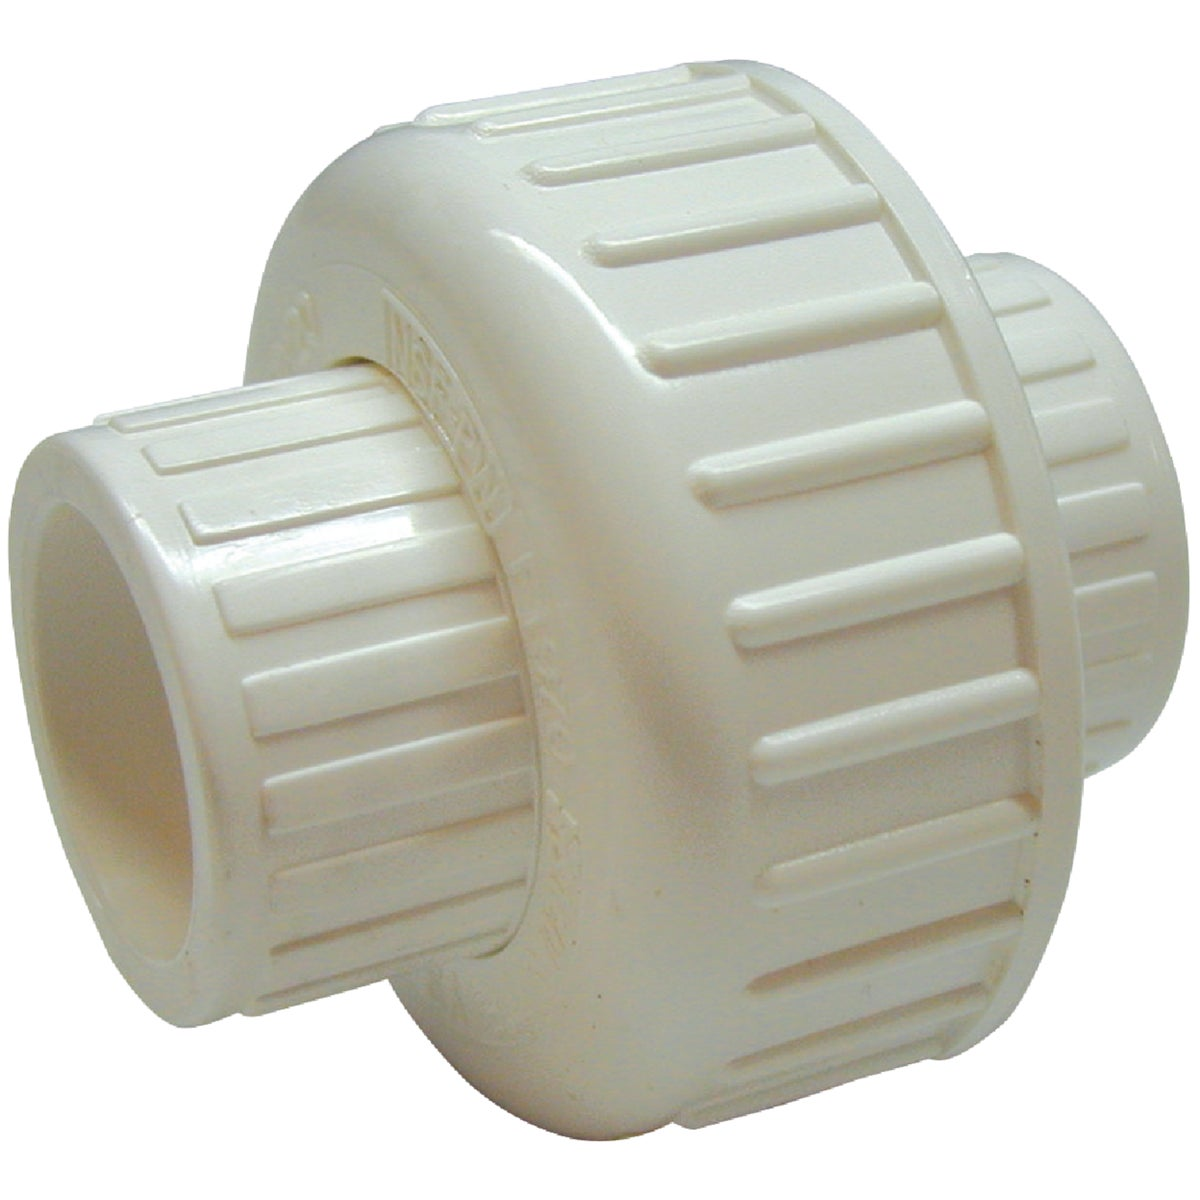 "WHT 1"" SXS PVC UNION - 164-635 by Mueller B K"